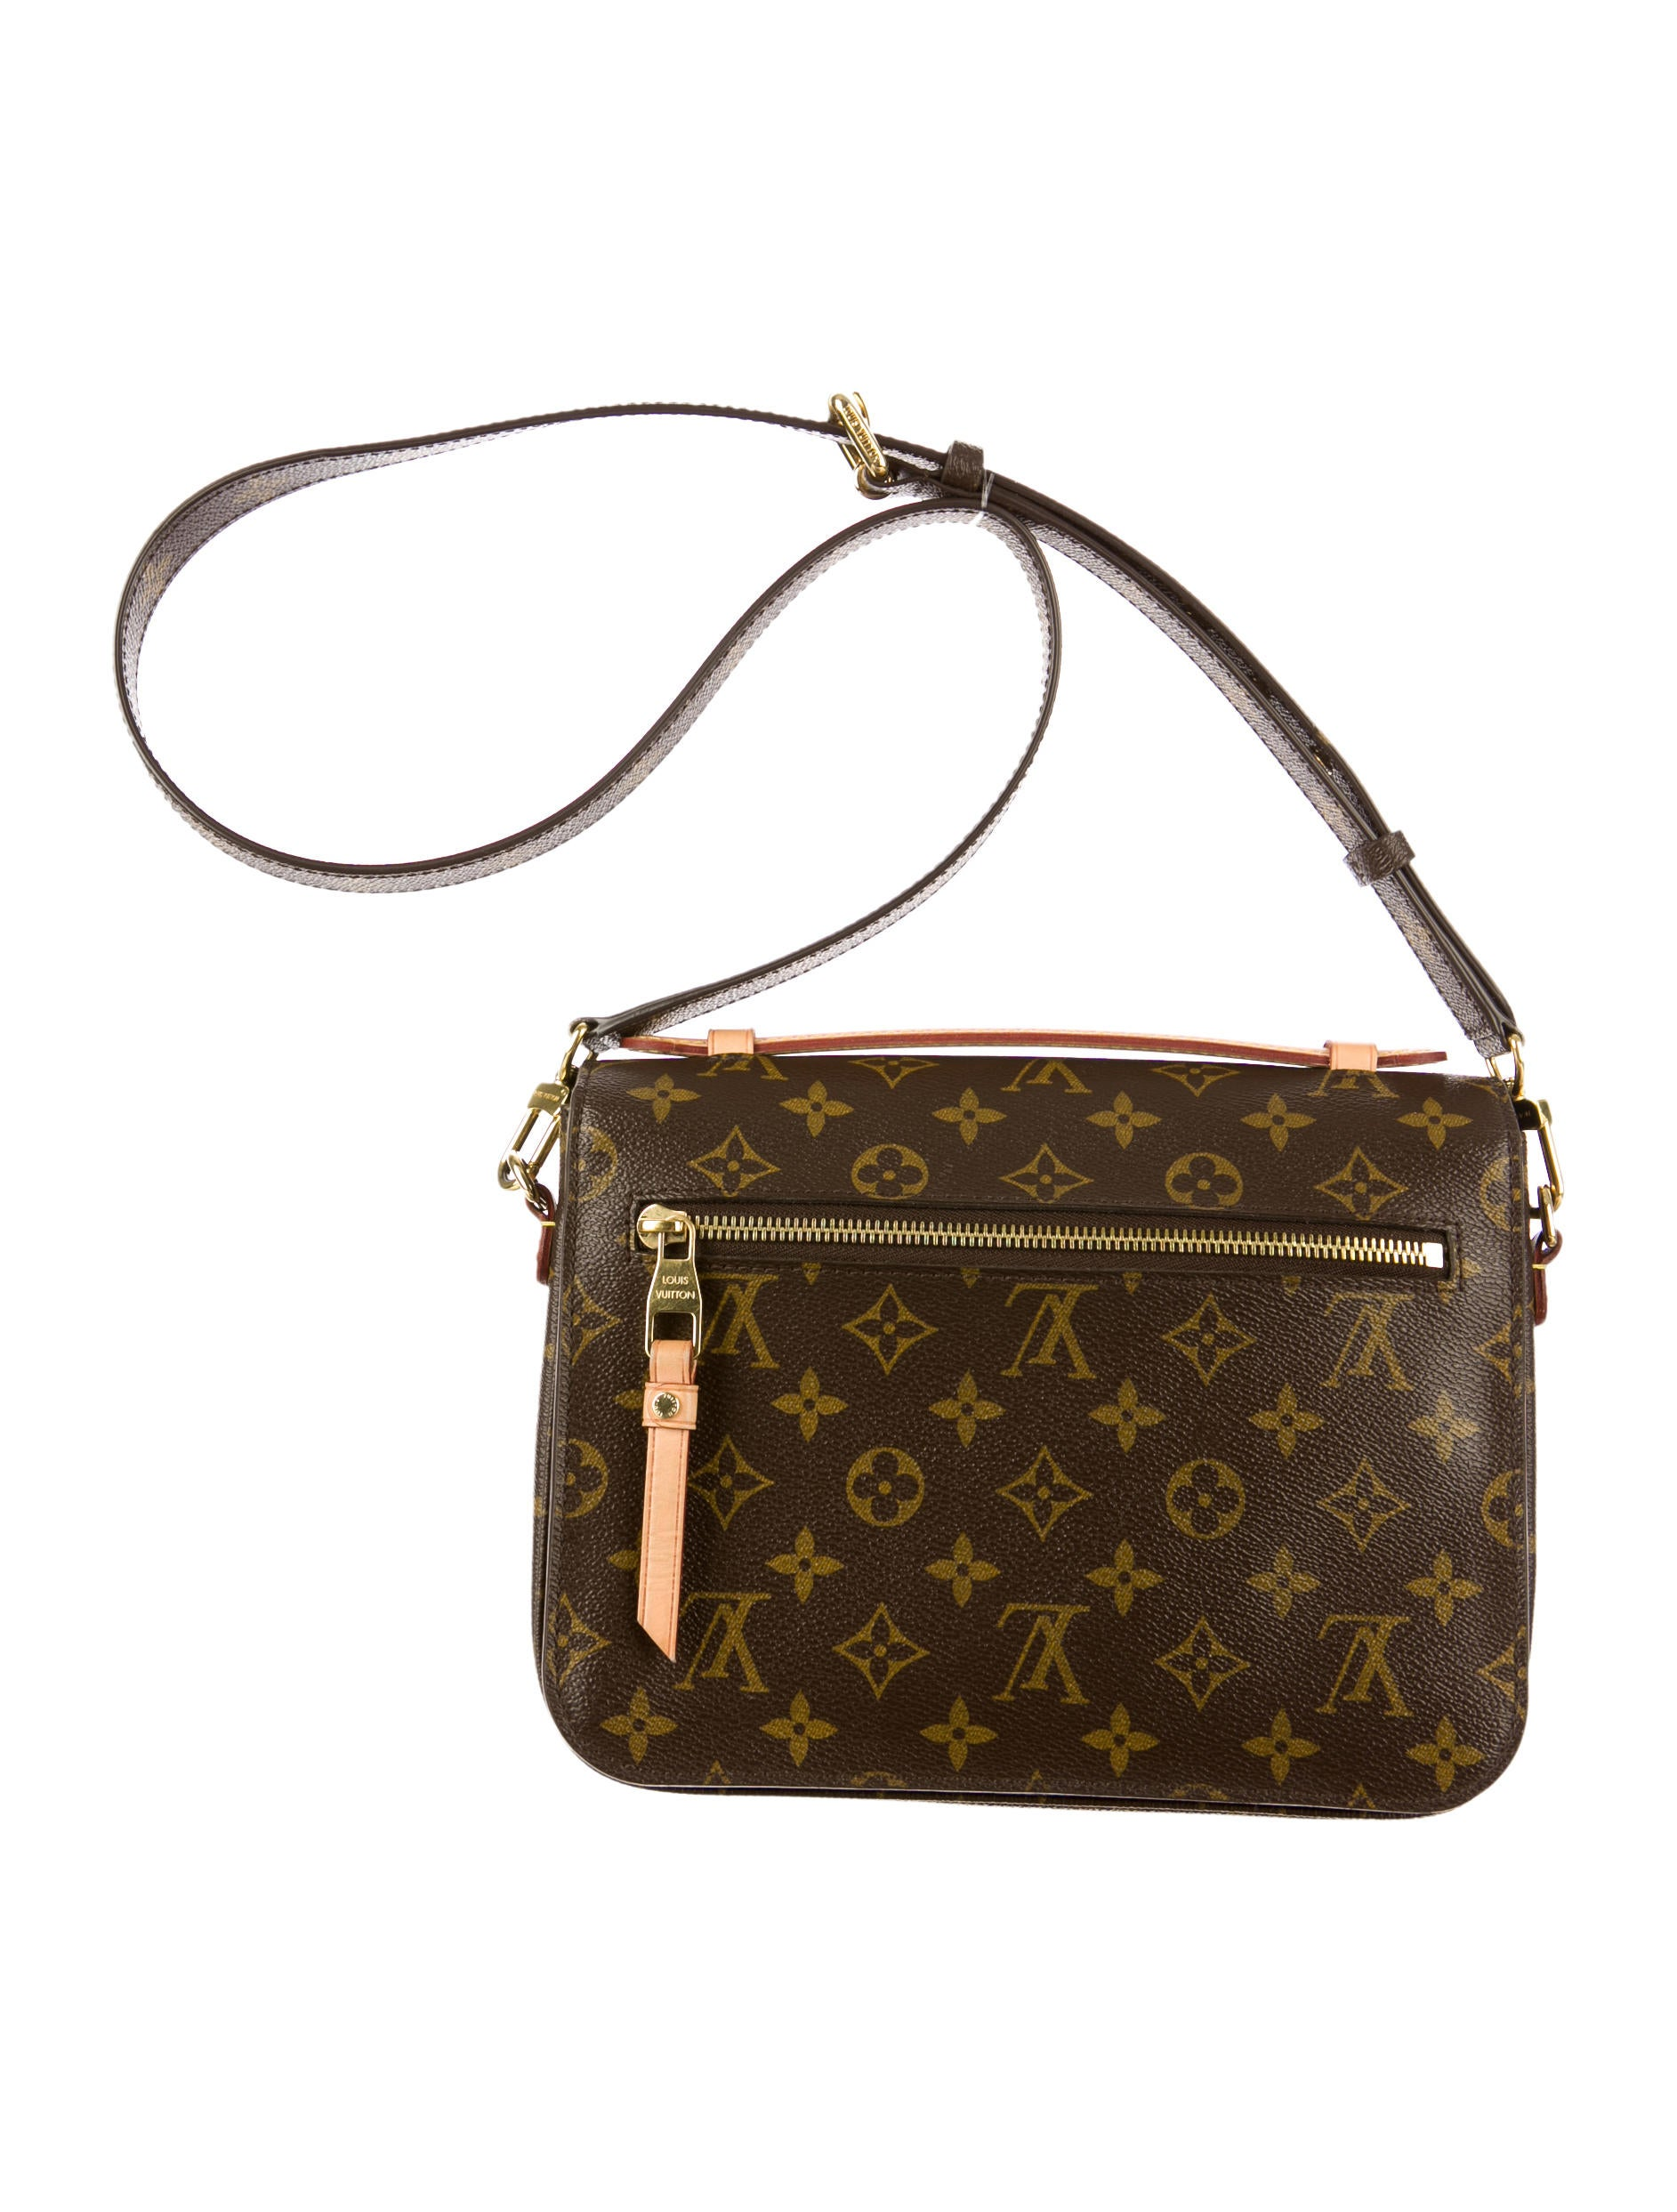 Louis Vuitton Monogram Pochette M233tis Handbags  : LOU340444enlarged from www.therealreal.com size 1885 x 2486 jpeg 310kB